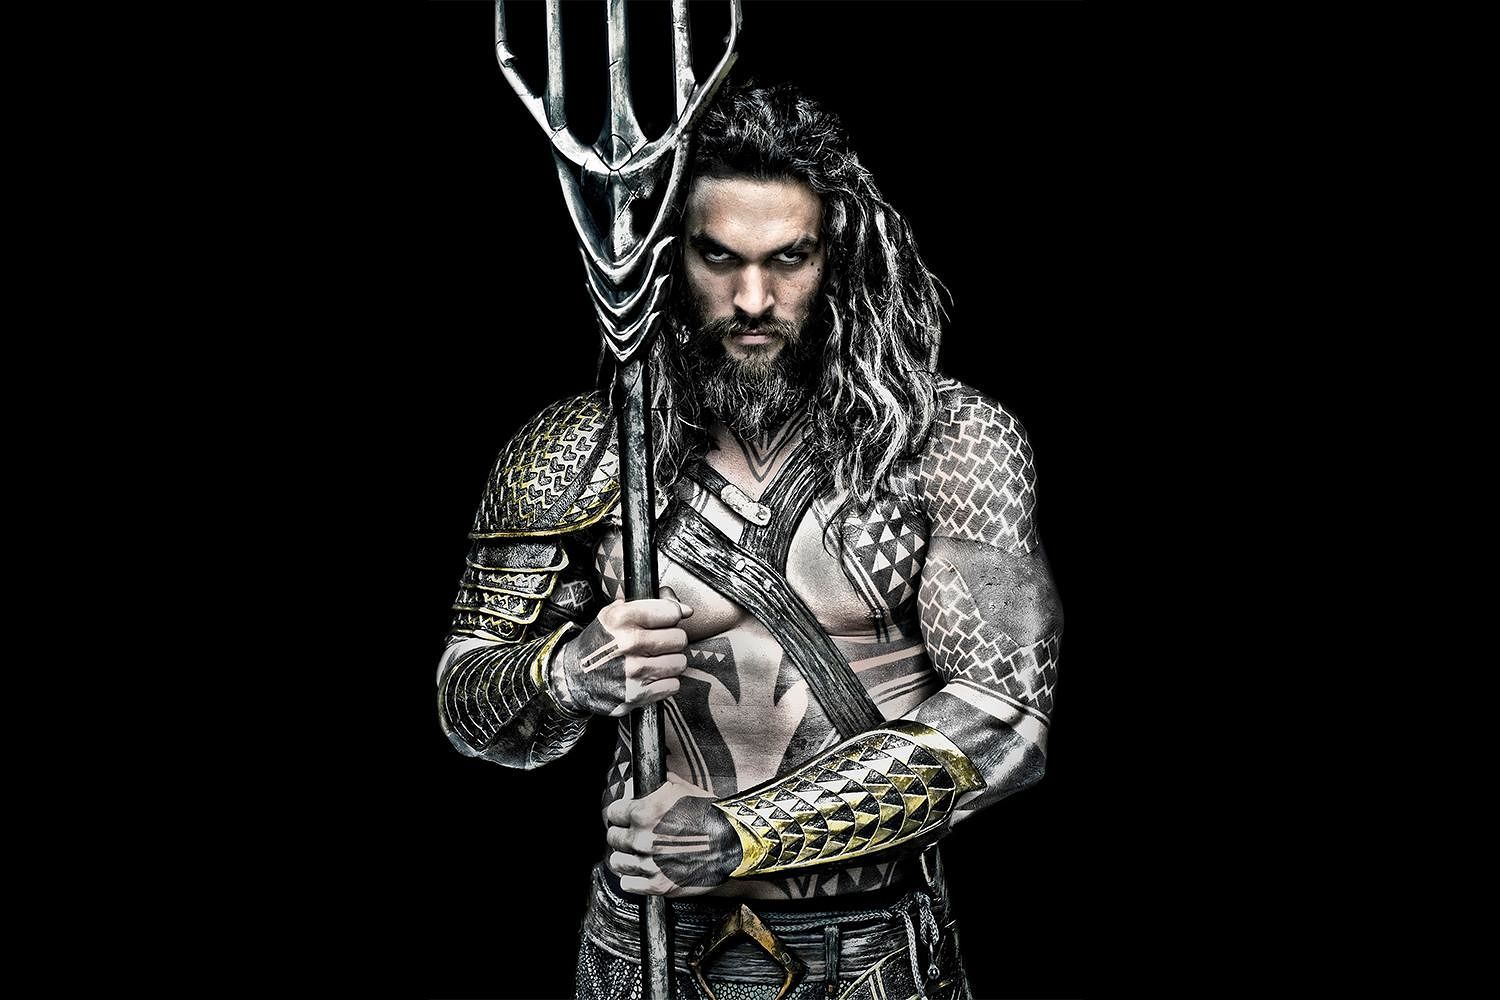 15 Facts About Jason Momoa That Will Make You Love Him Even More